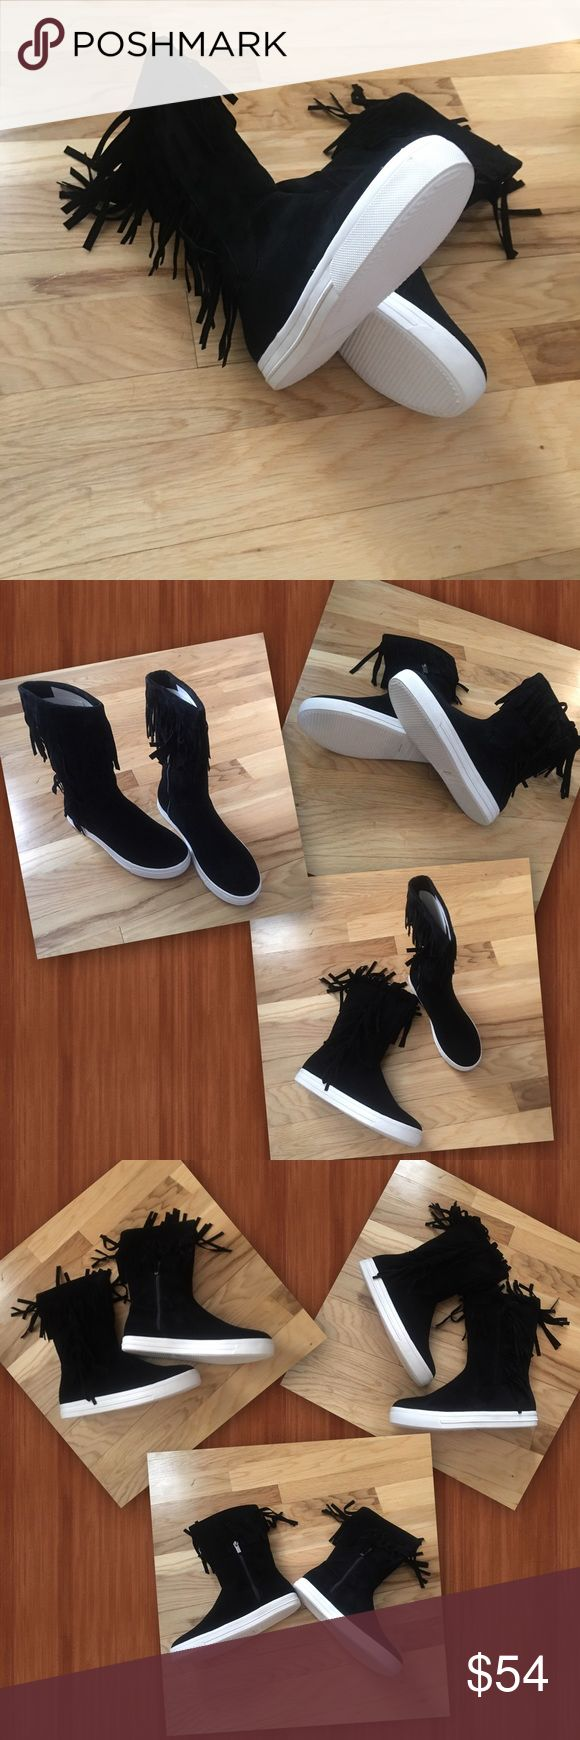 Jump The comfort and simple style of a slip on tennis shoe crafted into a boot. Boho friendly black suede boots. Inside black zippers for an easy pulling off and putting on fit. With the Added festive fringe along the top and down the outside edge. Make your own style with shorts, skirts, leggings, jeans...versatile and trendy! Shoes Ankle Boots & Booties